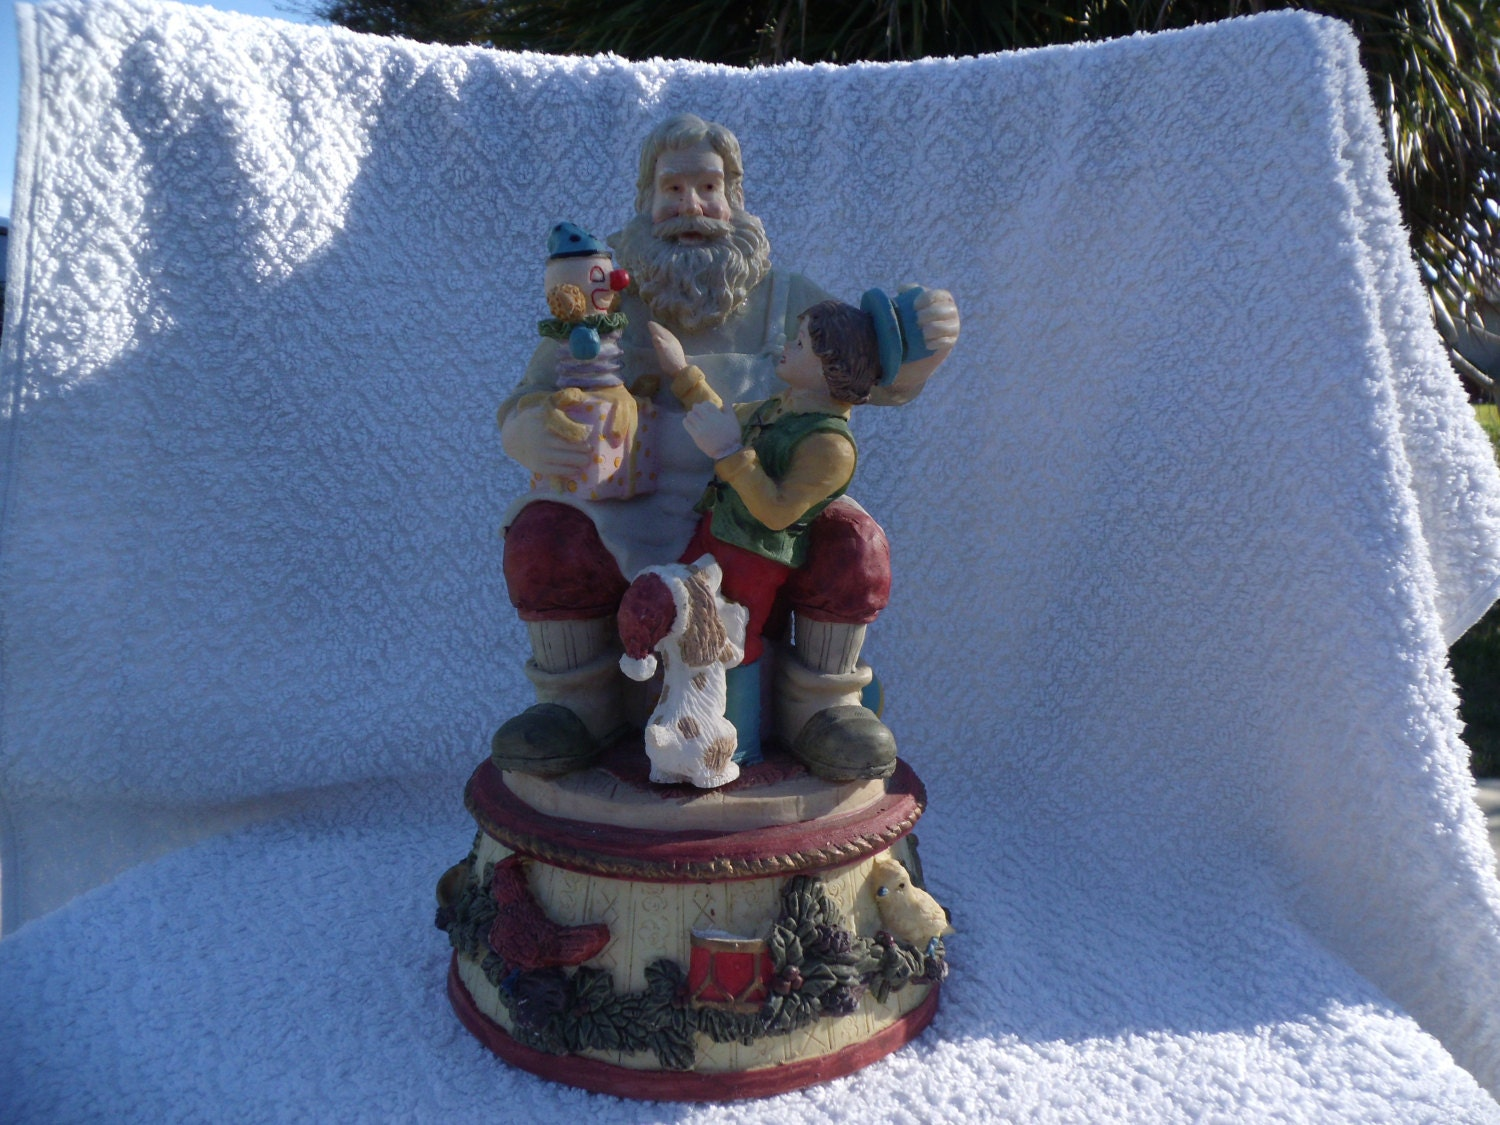 Music box figurine of santa claus with boy on his knee and toy